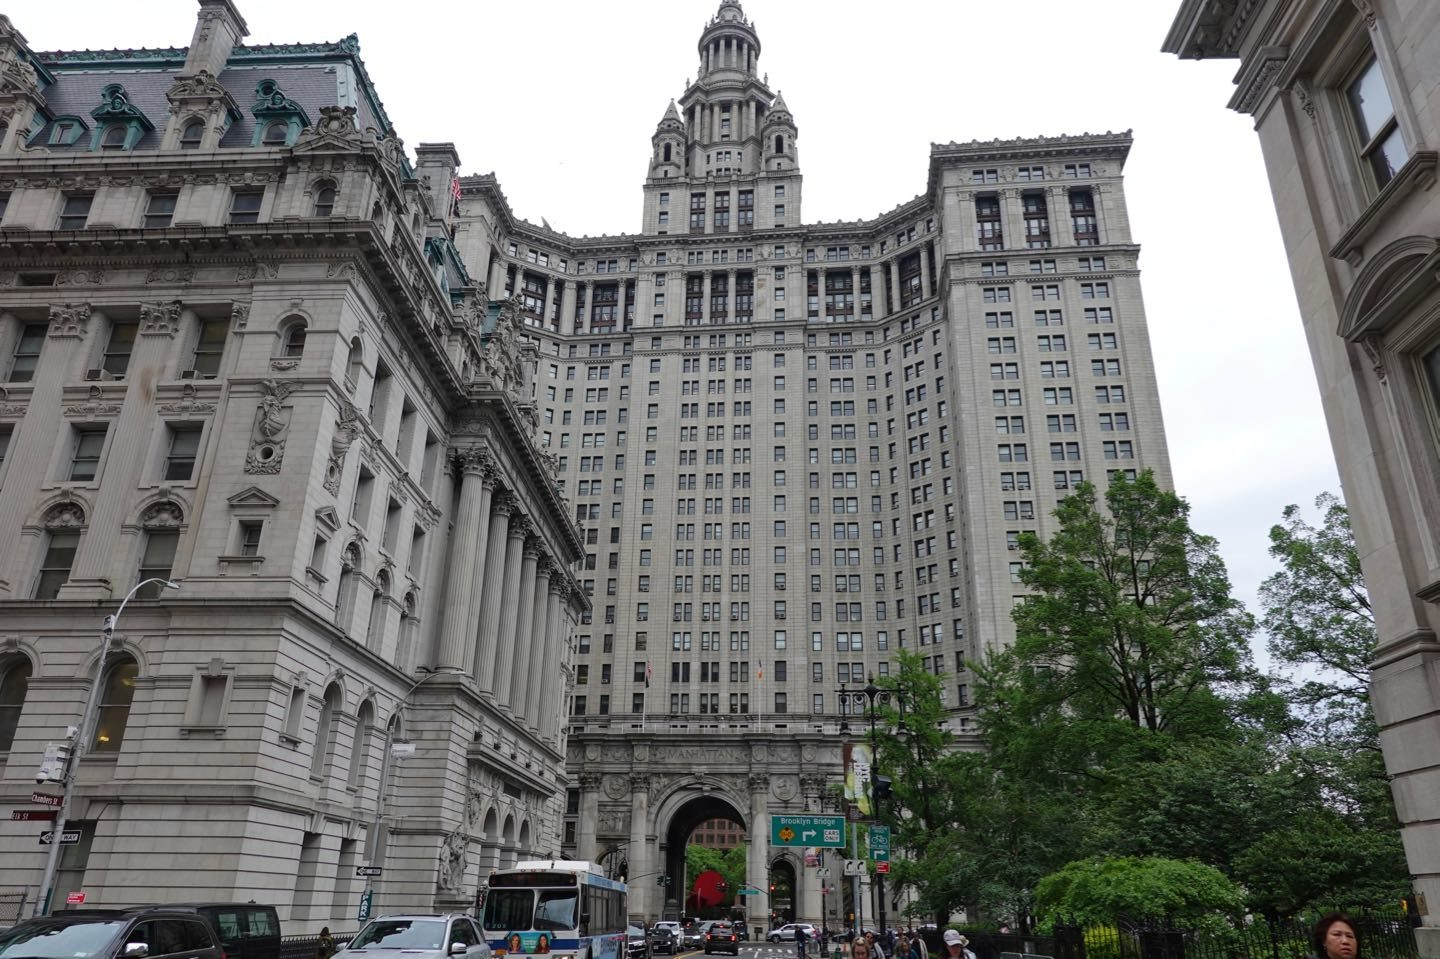 European Style Palace in NYC. The David N. Dinkins Municipal Building.